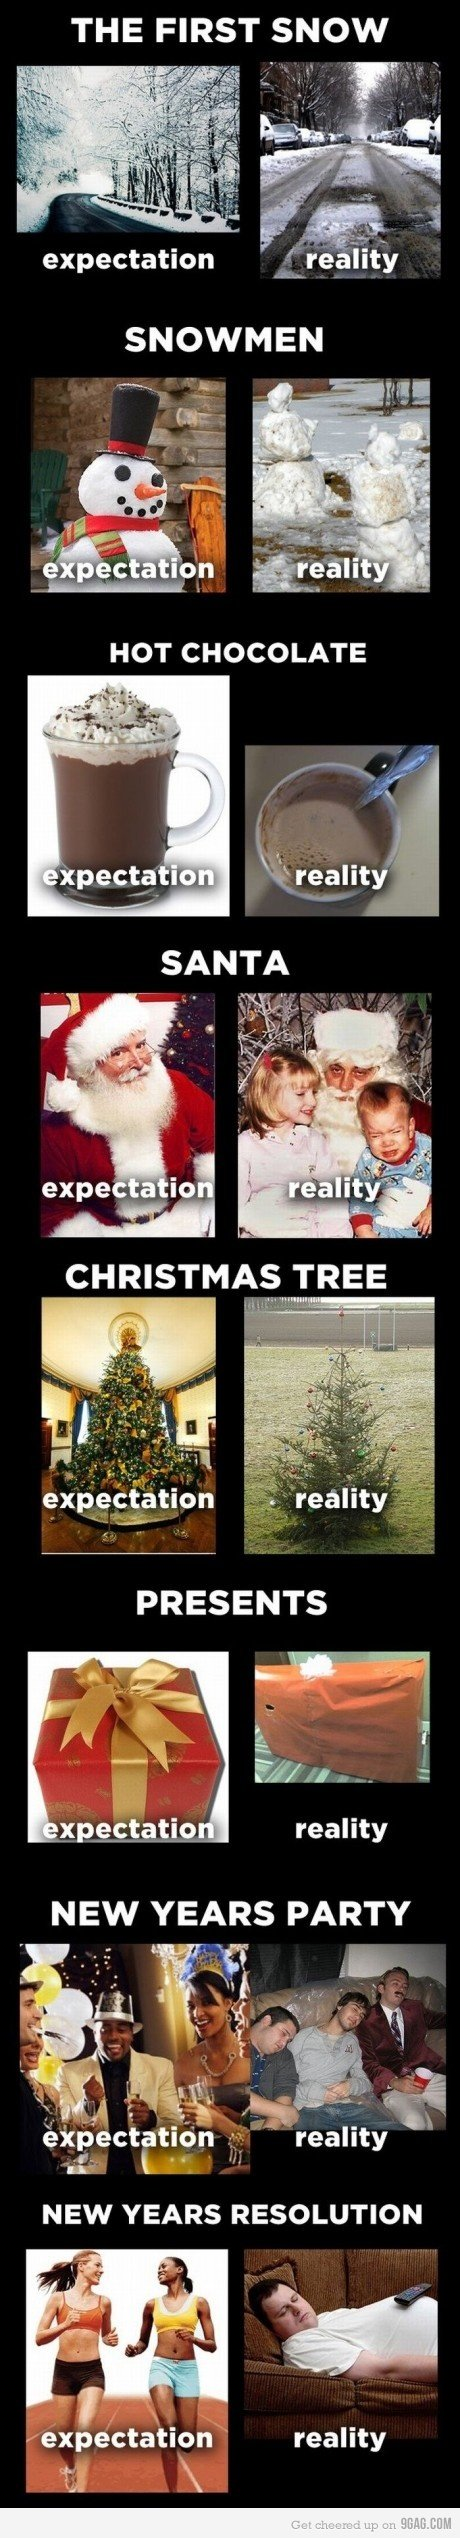 Christmas+expectation+vs+reality_8f2478_3005350